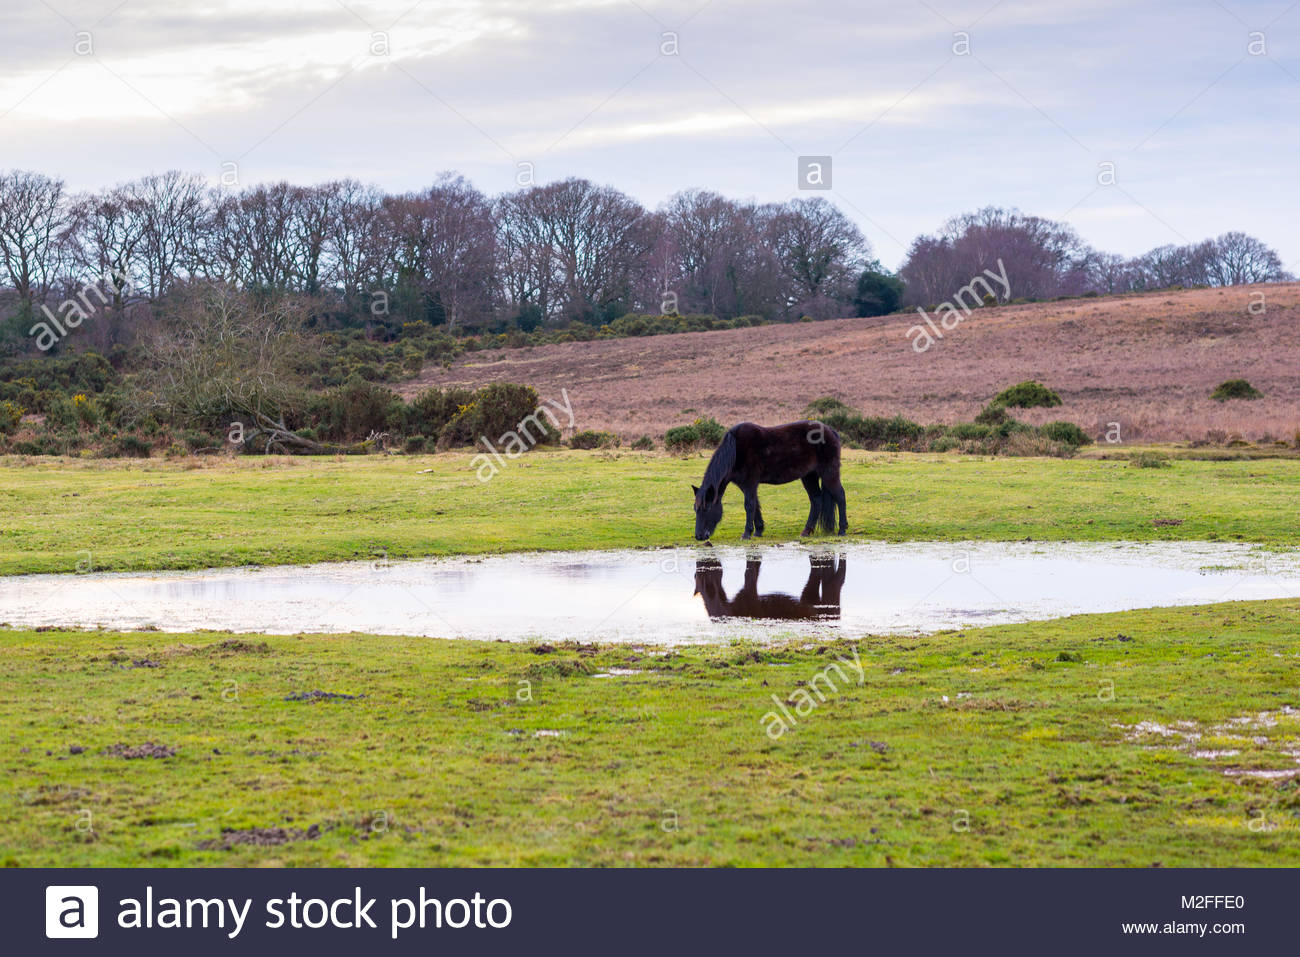 Ditchend Brook, Godshill, New Forest, Hampshire, 7th February 2018. Calm and serene weather conditions late afternoon - Stock Image